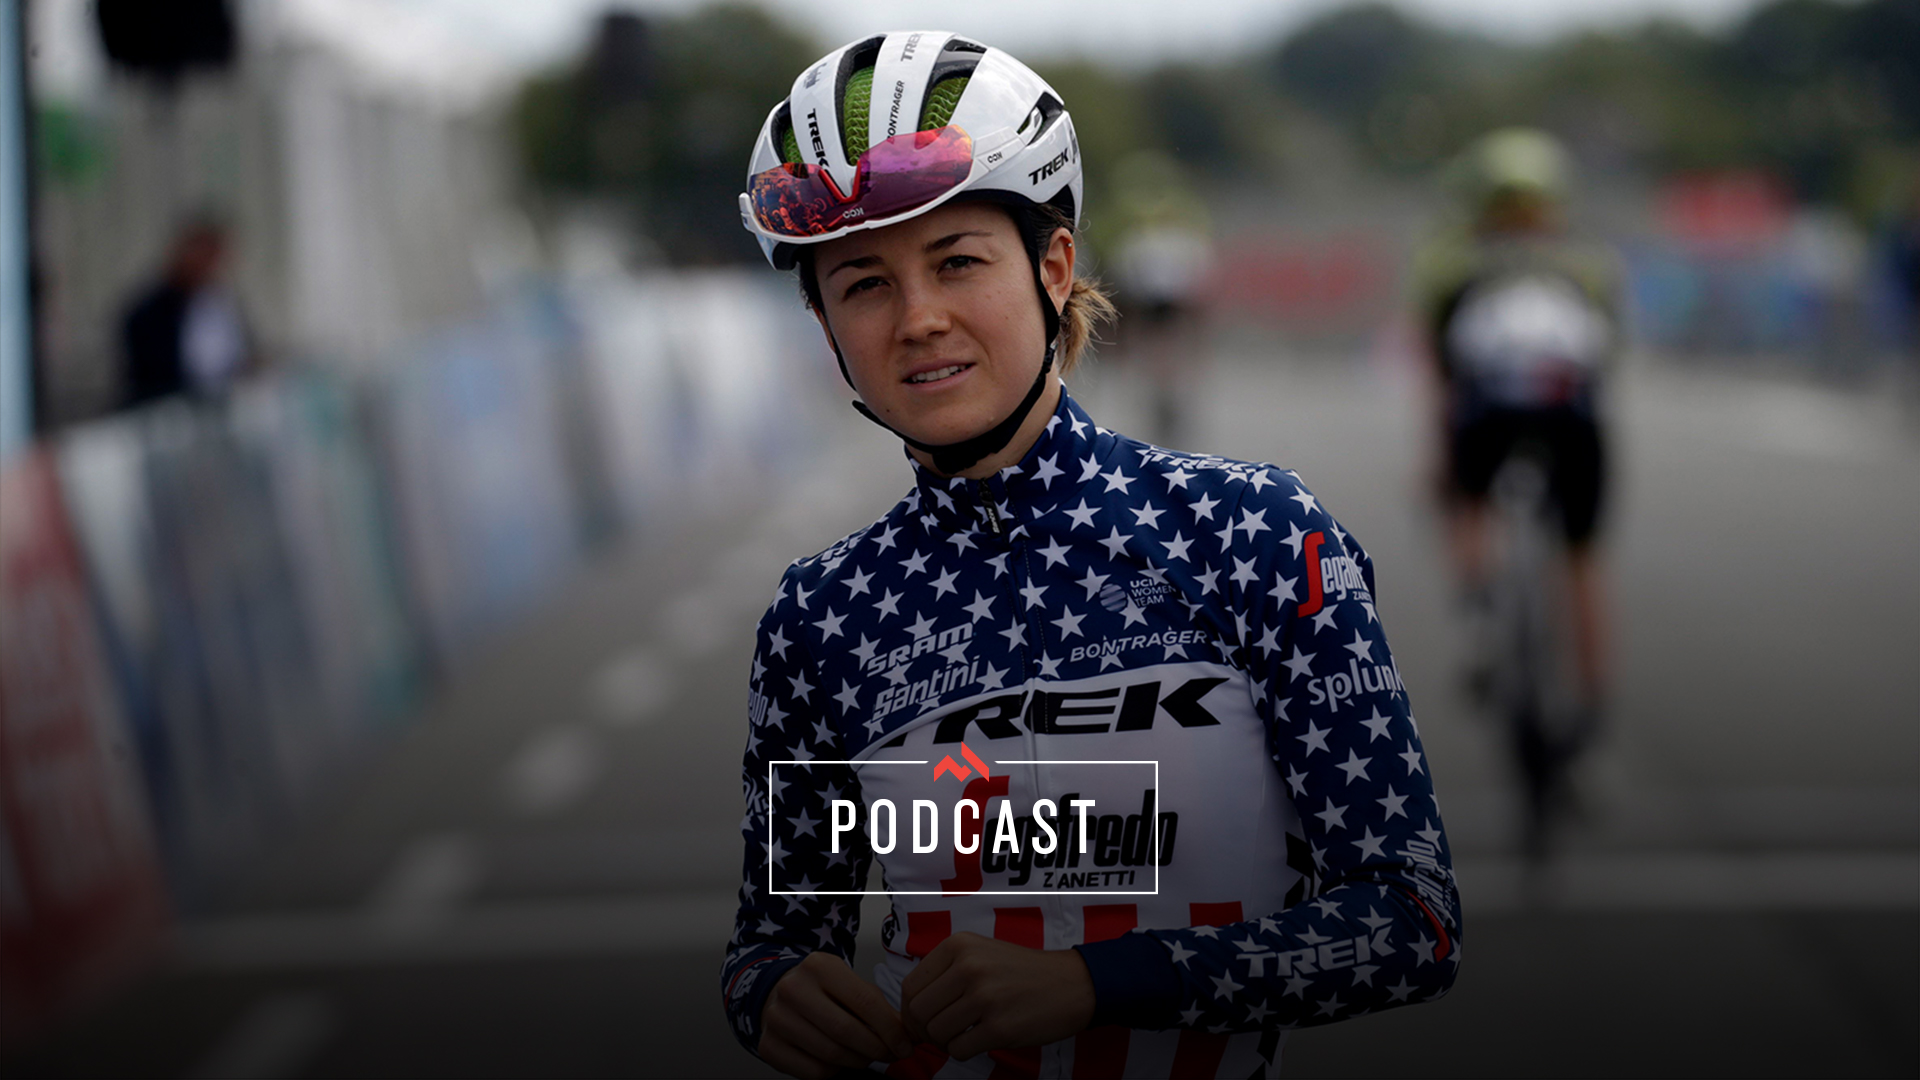 Freewheeling Podcast: The USA Olympic team has been announced